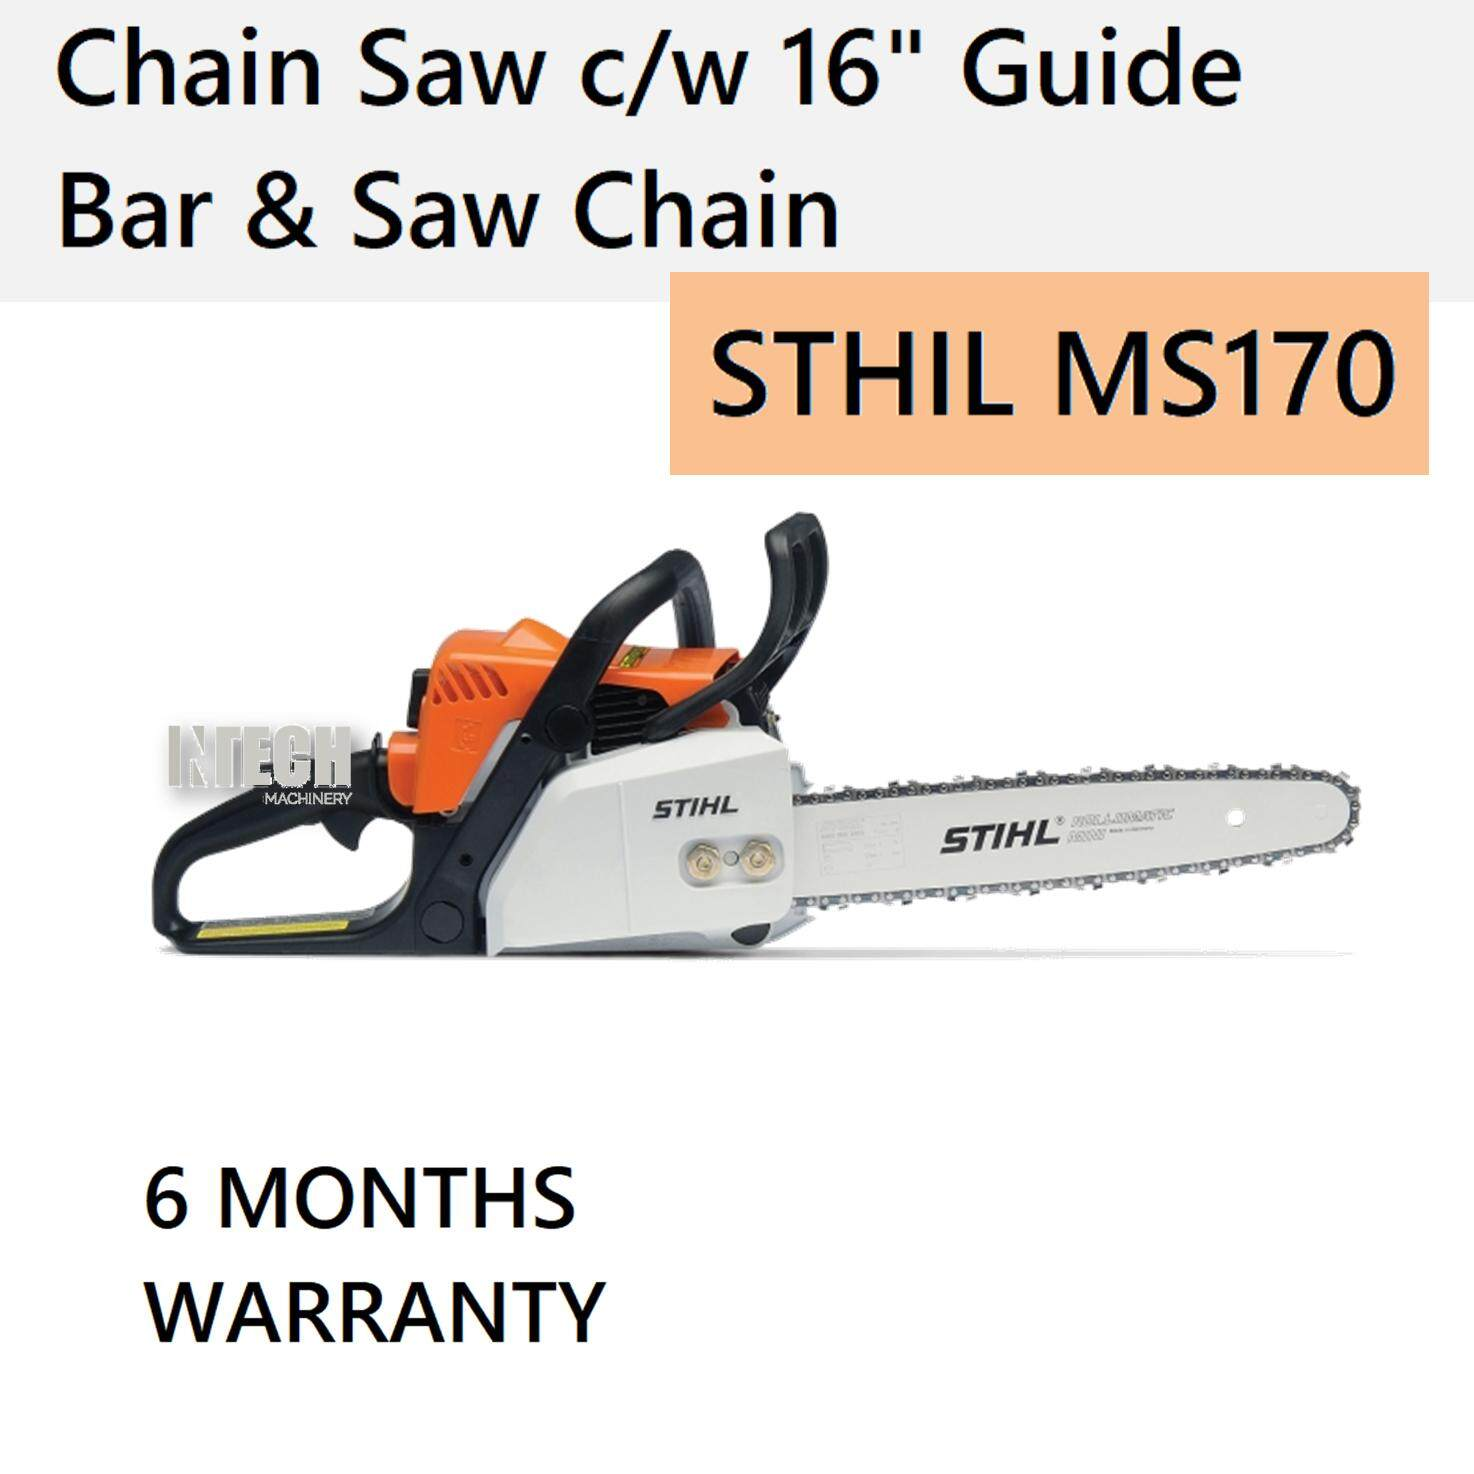 STIHL MS170 CHAIN SAW C/W 16